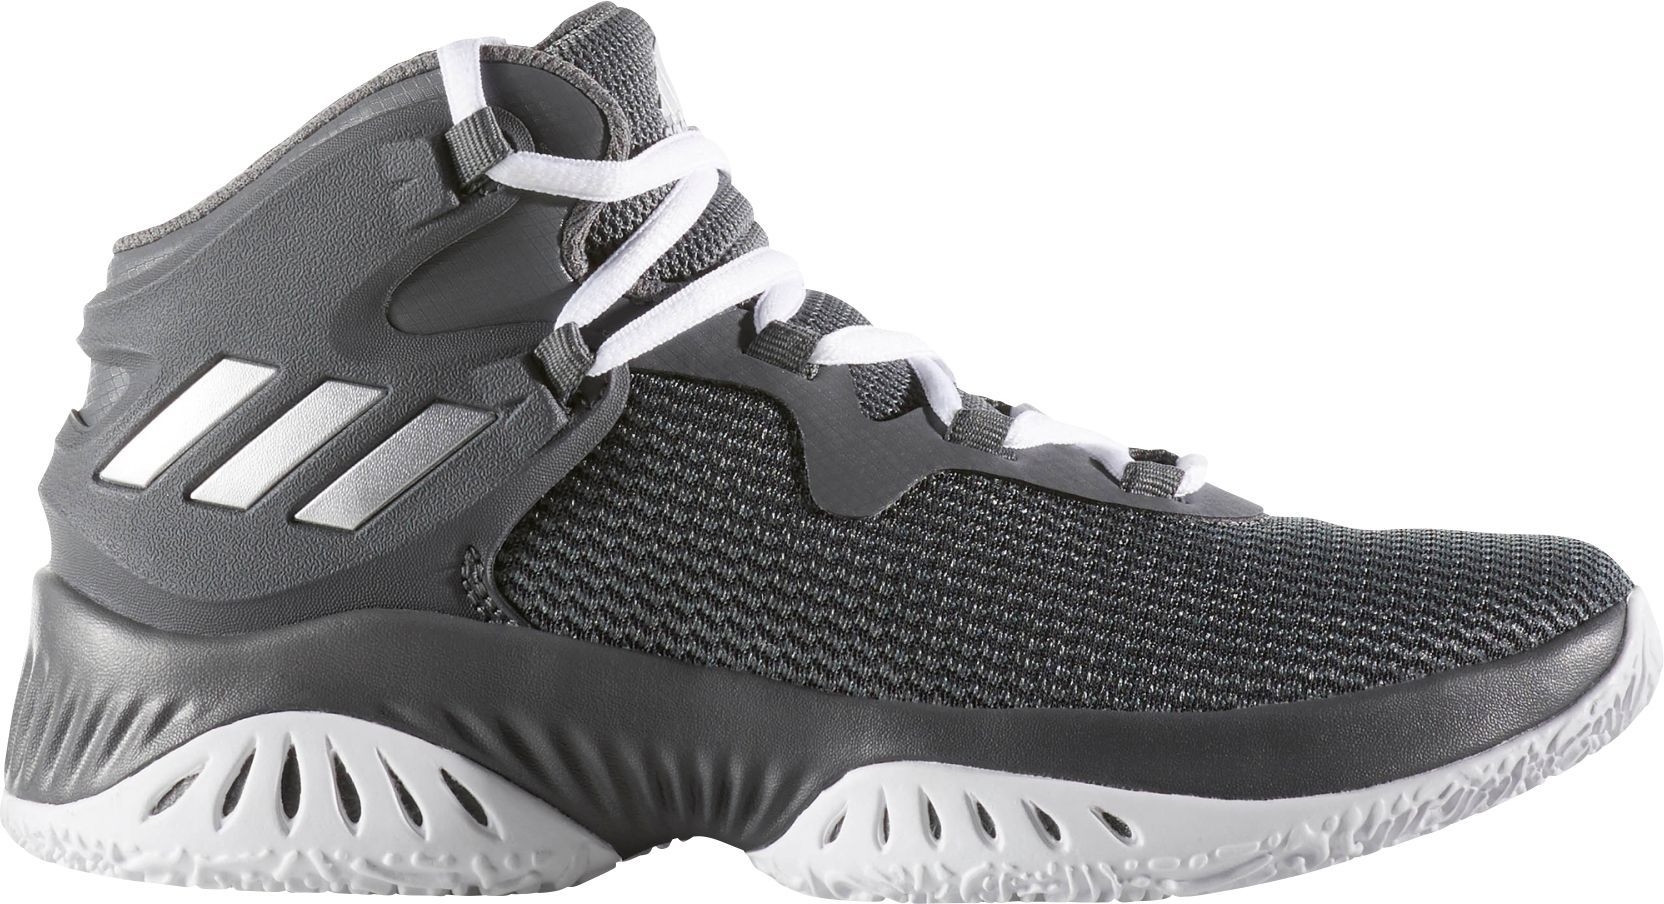 Kids' Basketball Shoes | Best Price Guarantee at DICK'S